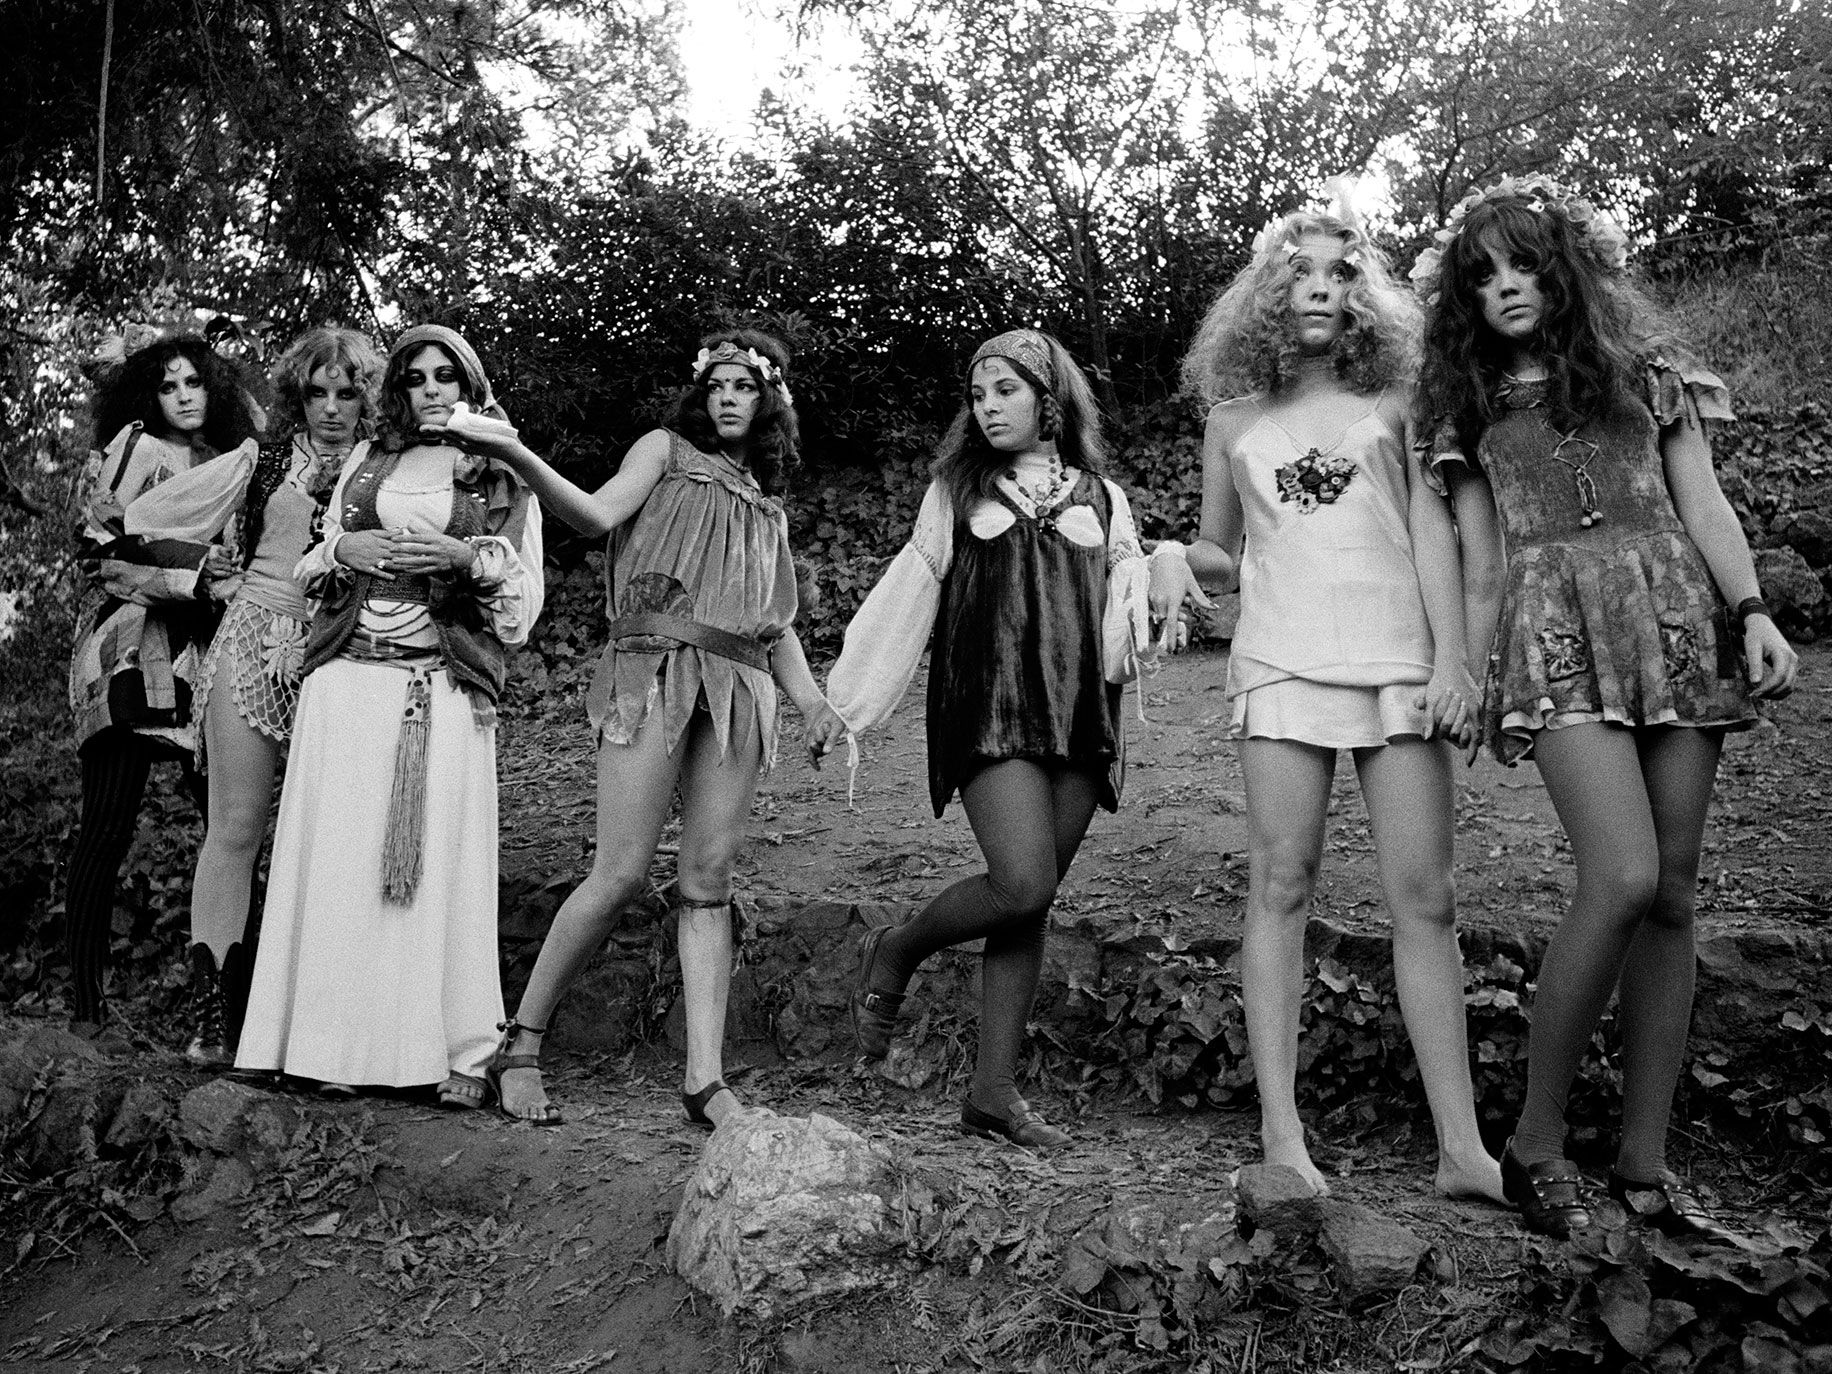 Pop group The GTOs (Girls Together Outrageously), from left to right: Miss Christine, Miss Cynderella, Miss Mercy, Miss Lucy, Miss Sandra, Miss Pamela and Miss Sparkie.